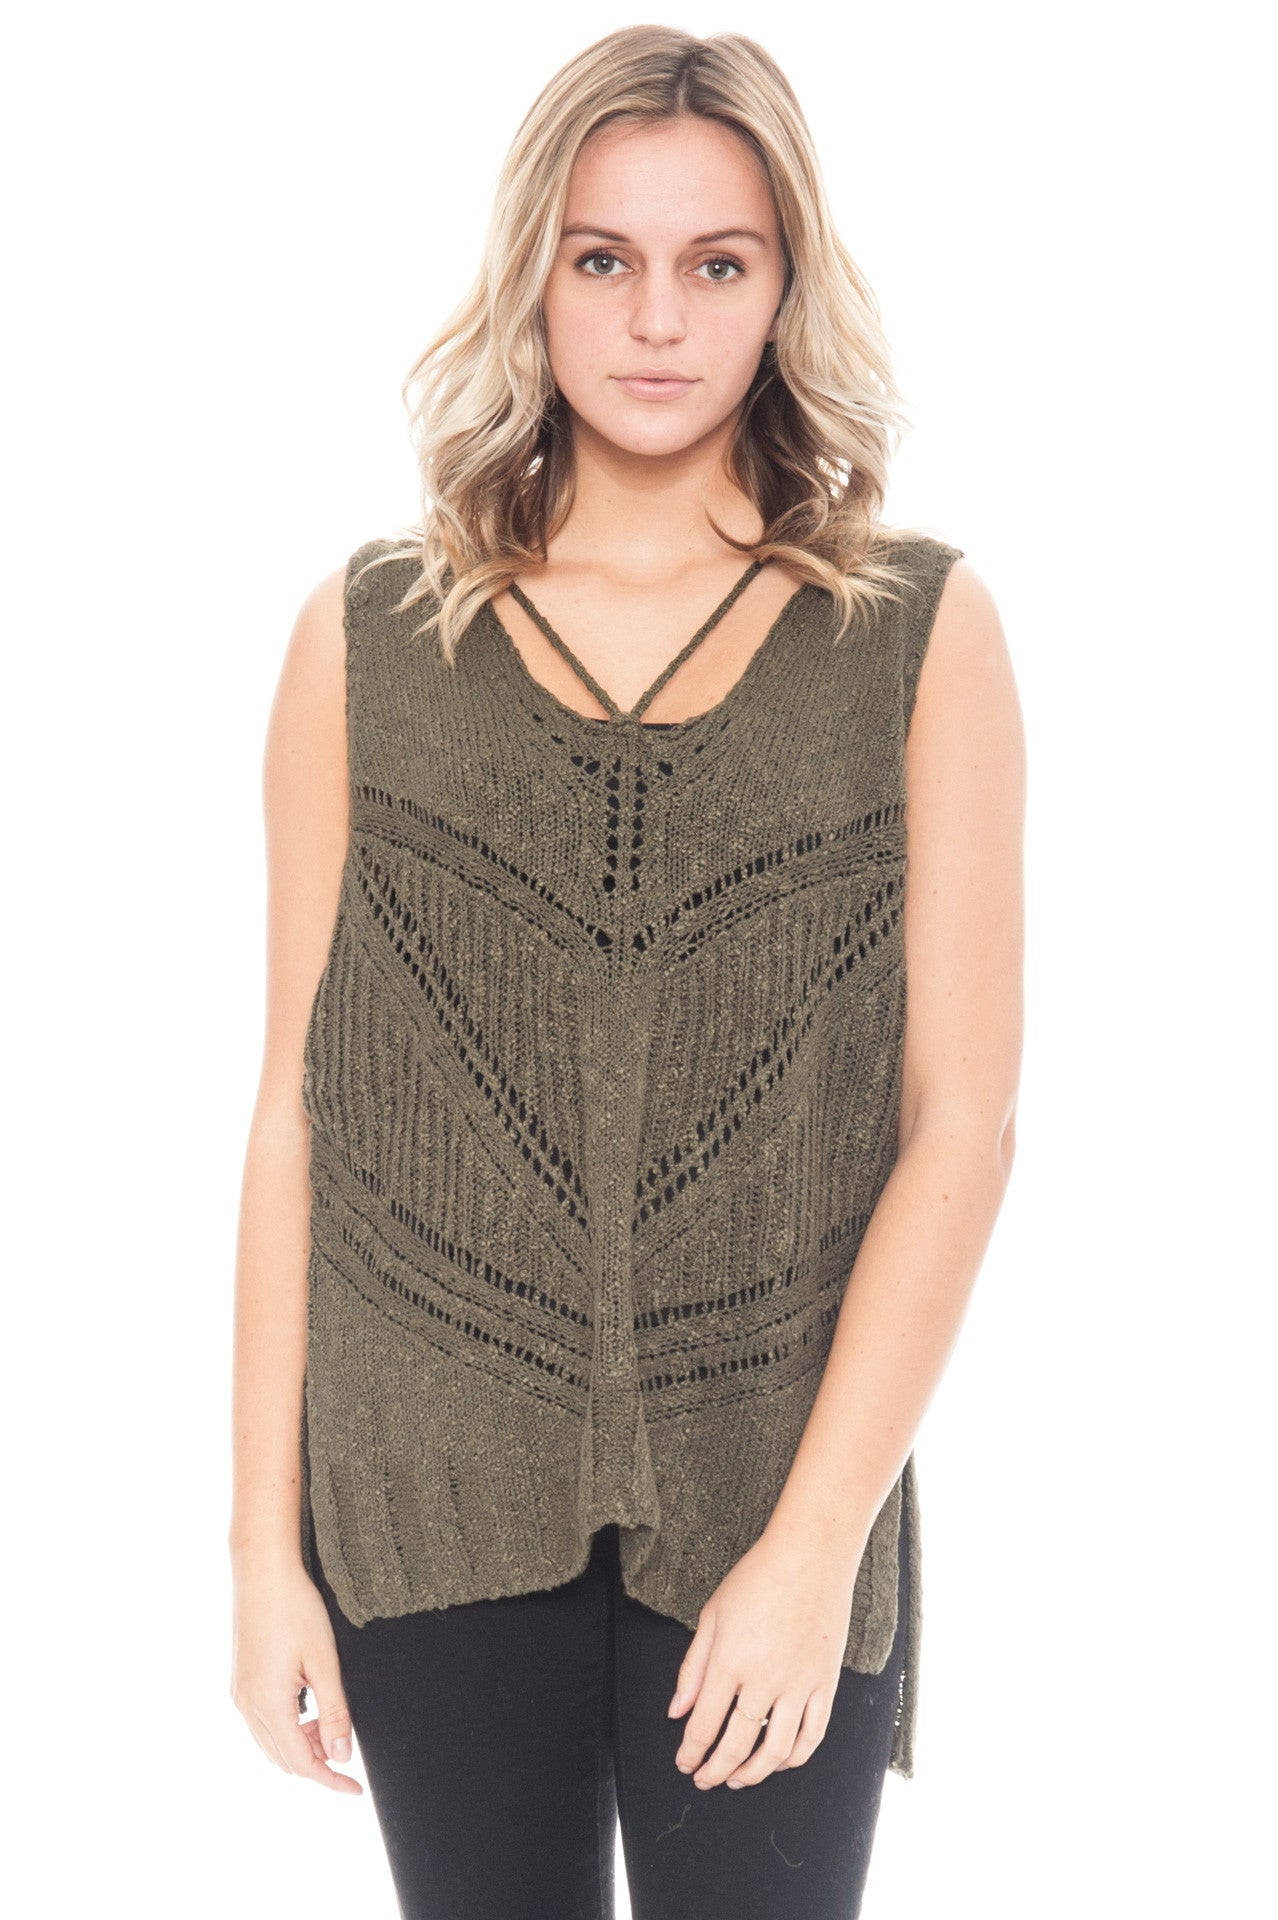 Sweater - Sleeveless Sweater with Criss-Cross Back by Lush (Final Sale)